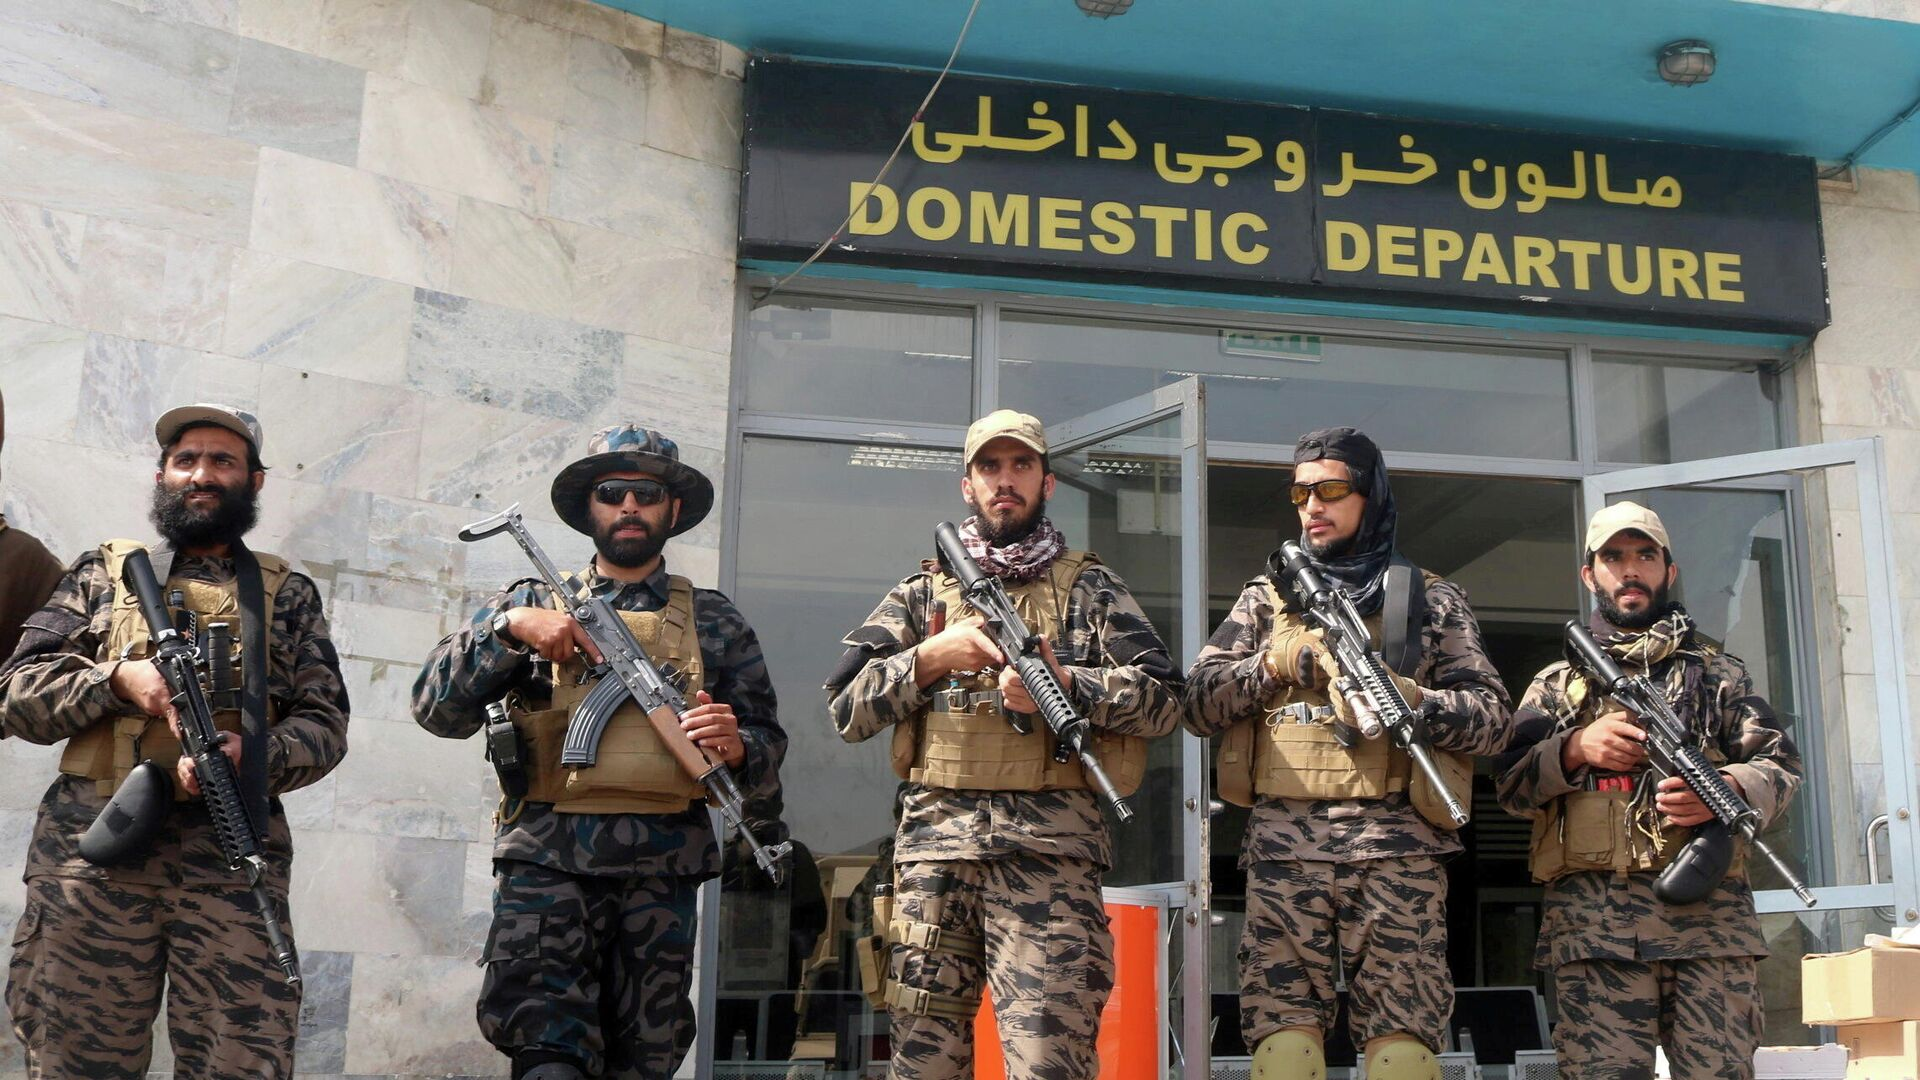 Taliban forces stand guard a day after the U.S. troops withdrawal from Hamid Karzai International Airport in Kabul, Afghanistan August 31, 2021. - Sputnik International, 1920, 13.09.2021